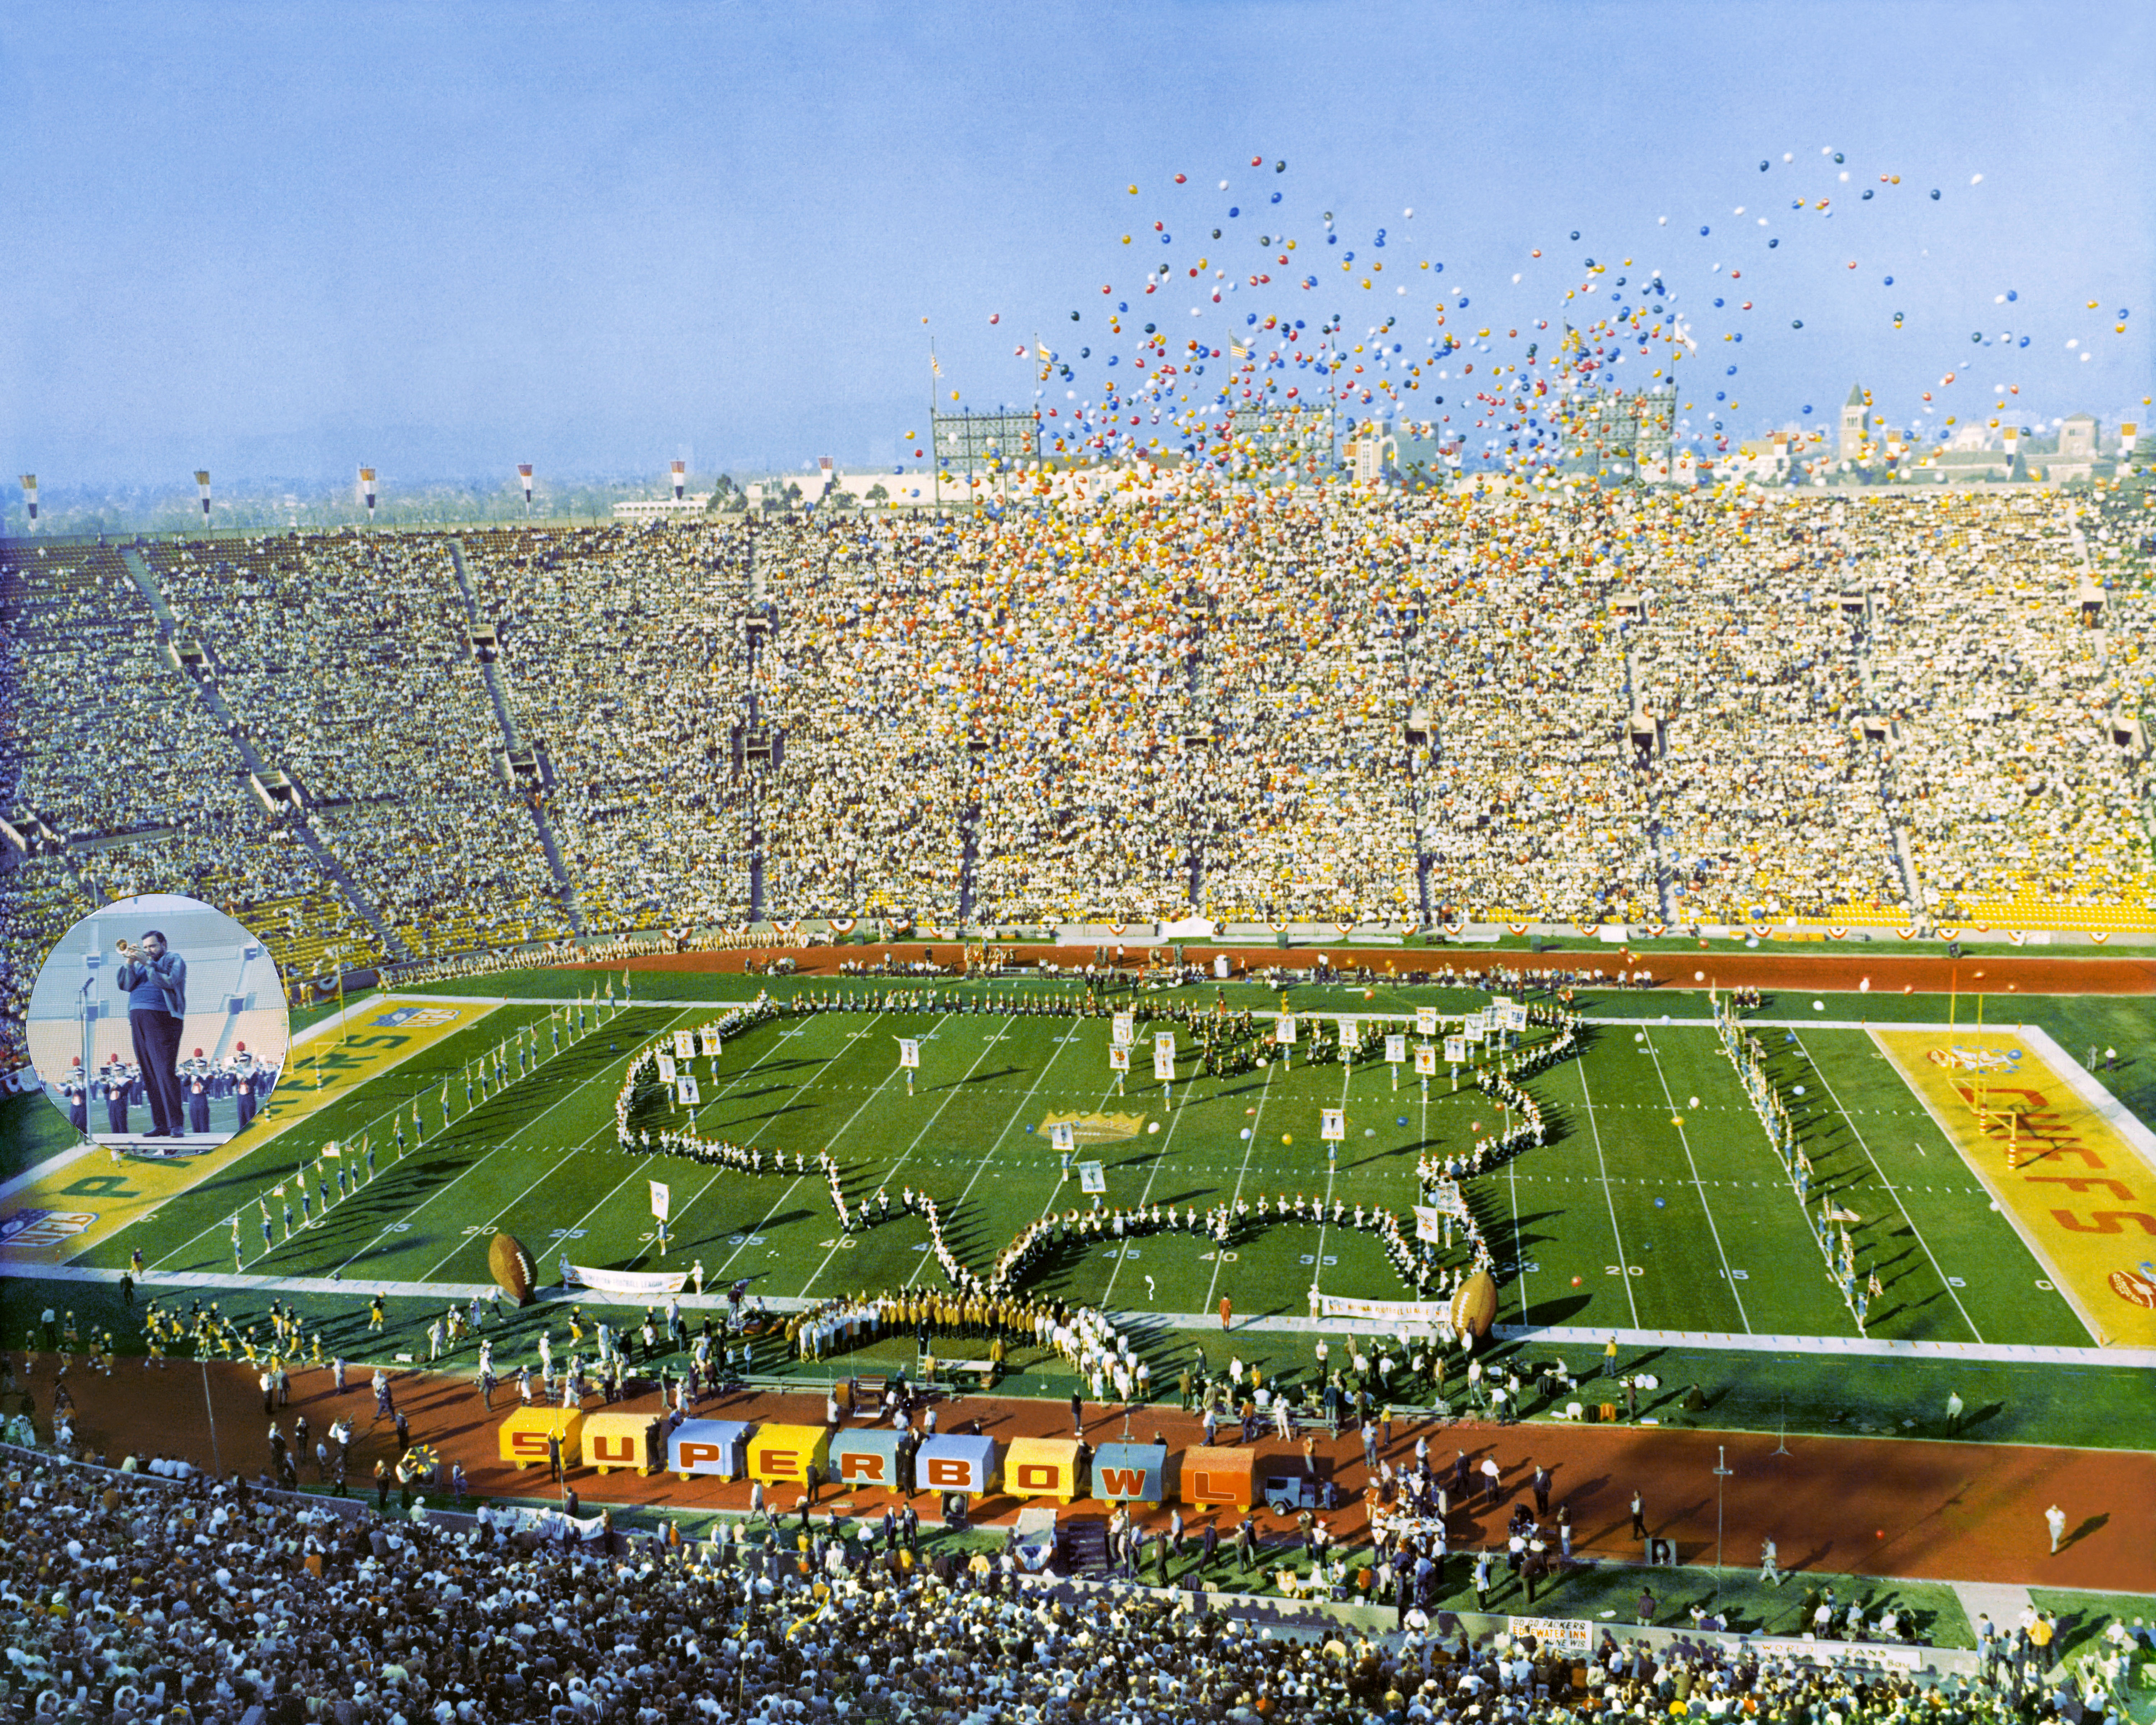 Super Bowl I at Los Angeles Coliseum on January 15, 1967, picturing University of Arizona Symphonic Marching Band & Grambling State University Marching Band, Al Hirt, Anaheim High School Drill Team and Flag Girls